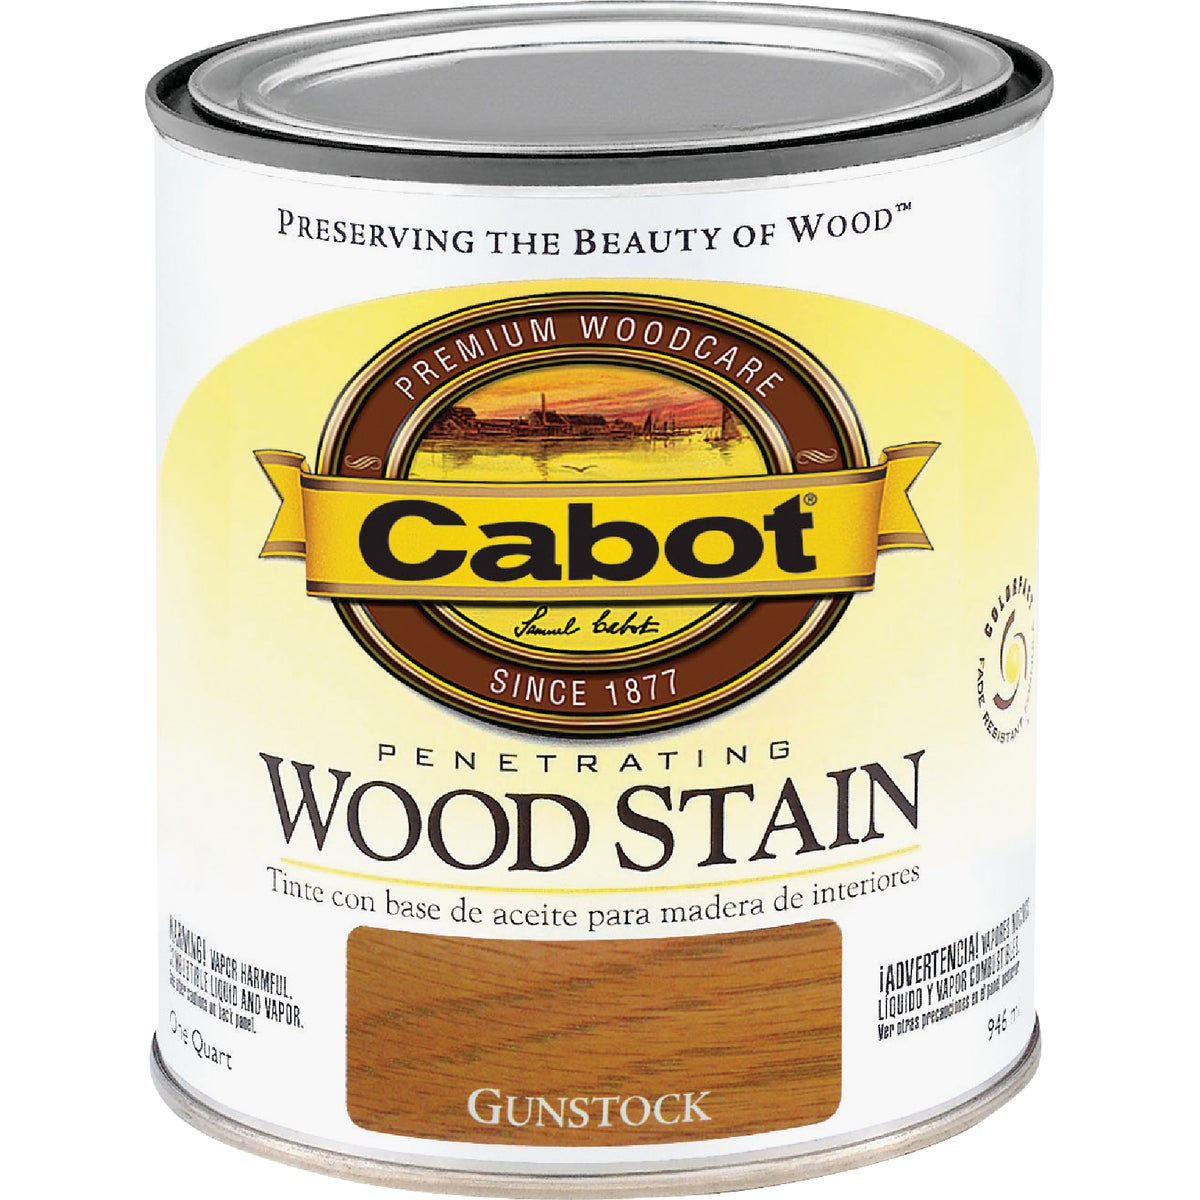 INT GUNSTOCK WOOD STAIN - 144.0008139.005 by Valspar Corp